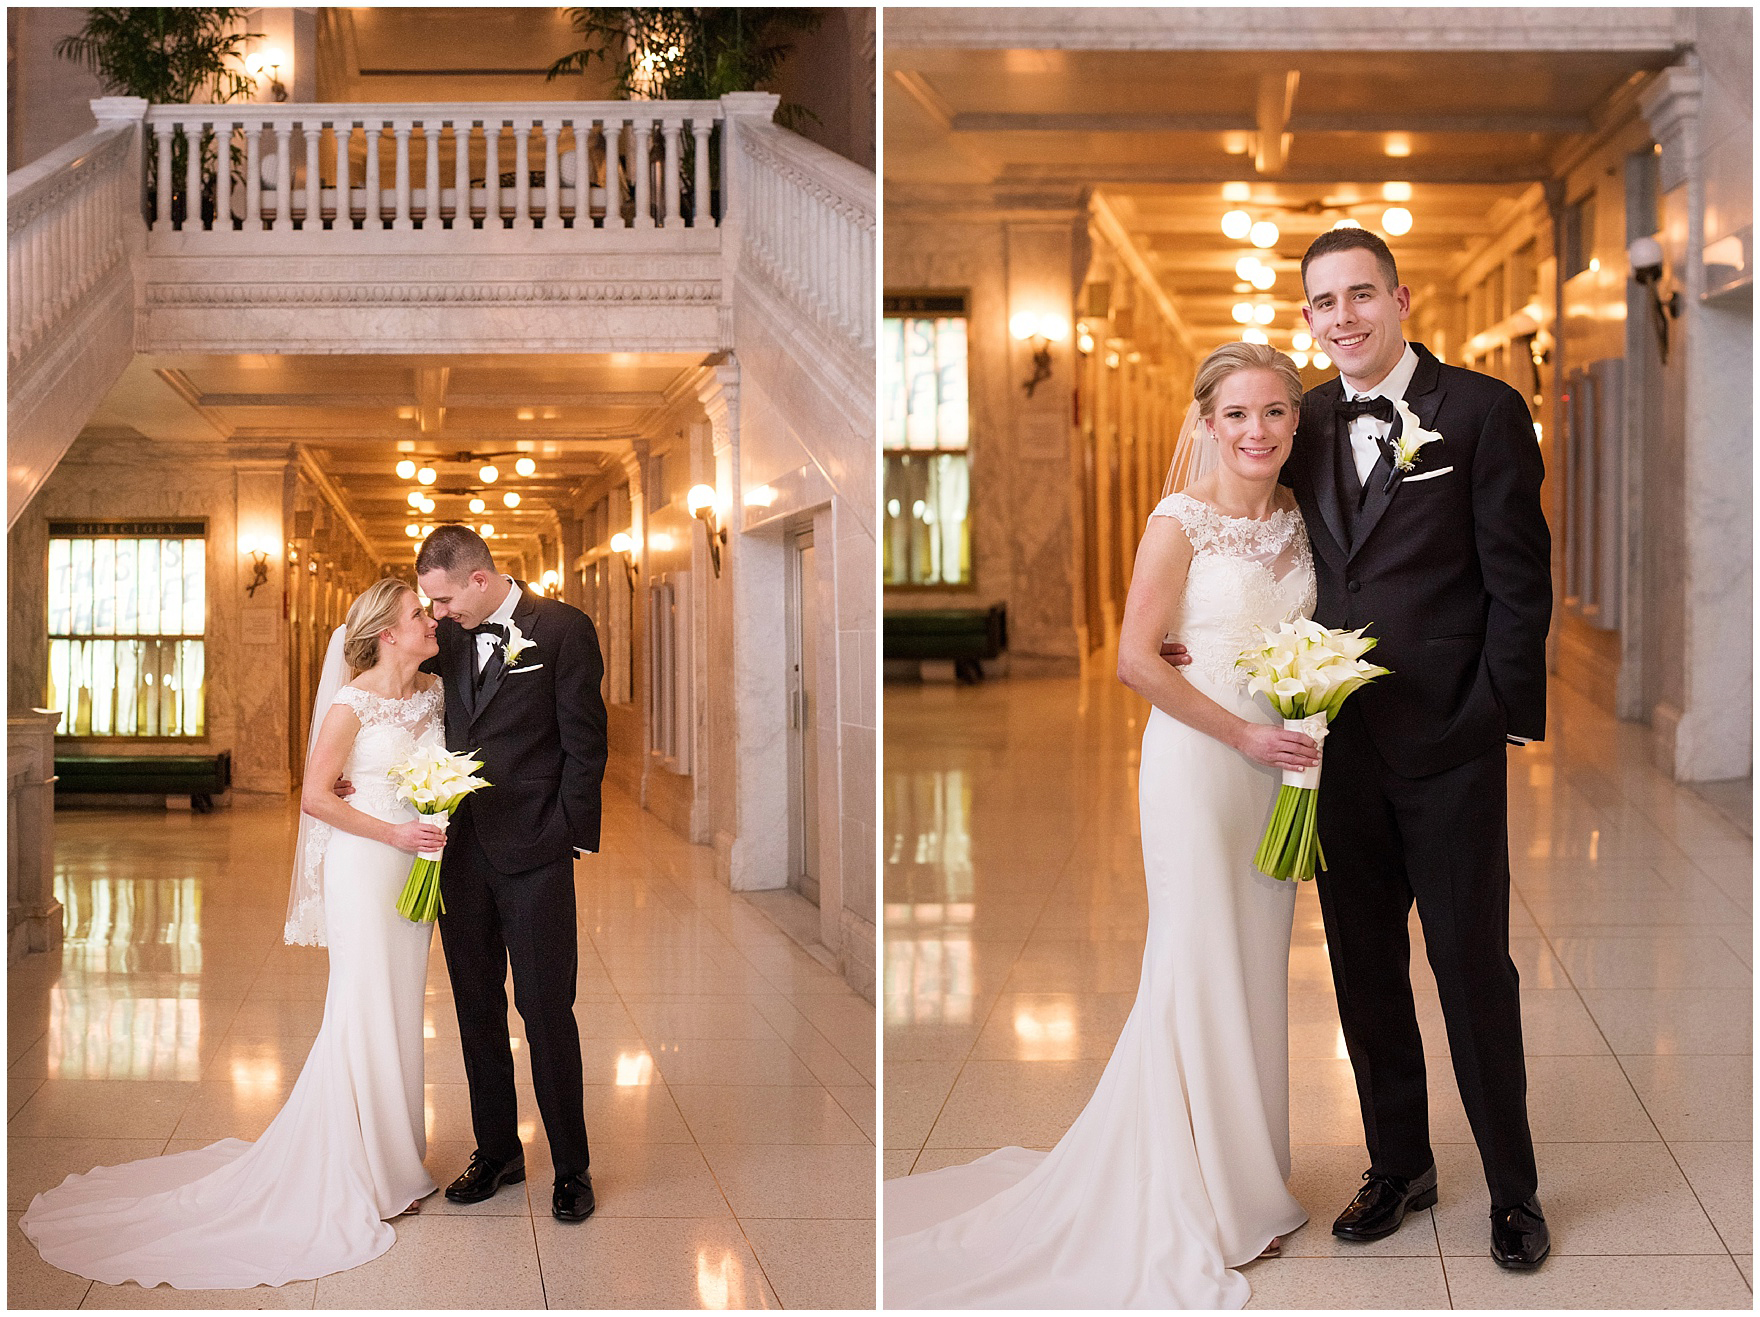 The bride and groom pose for photos at the Gray Hotel Chicago before a Newberry Library Chicago wedding.